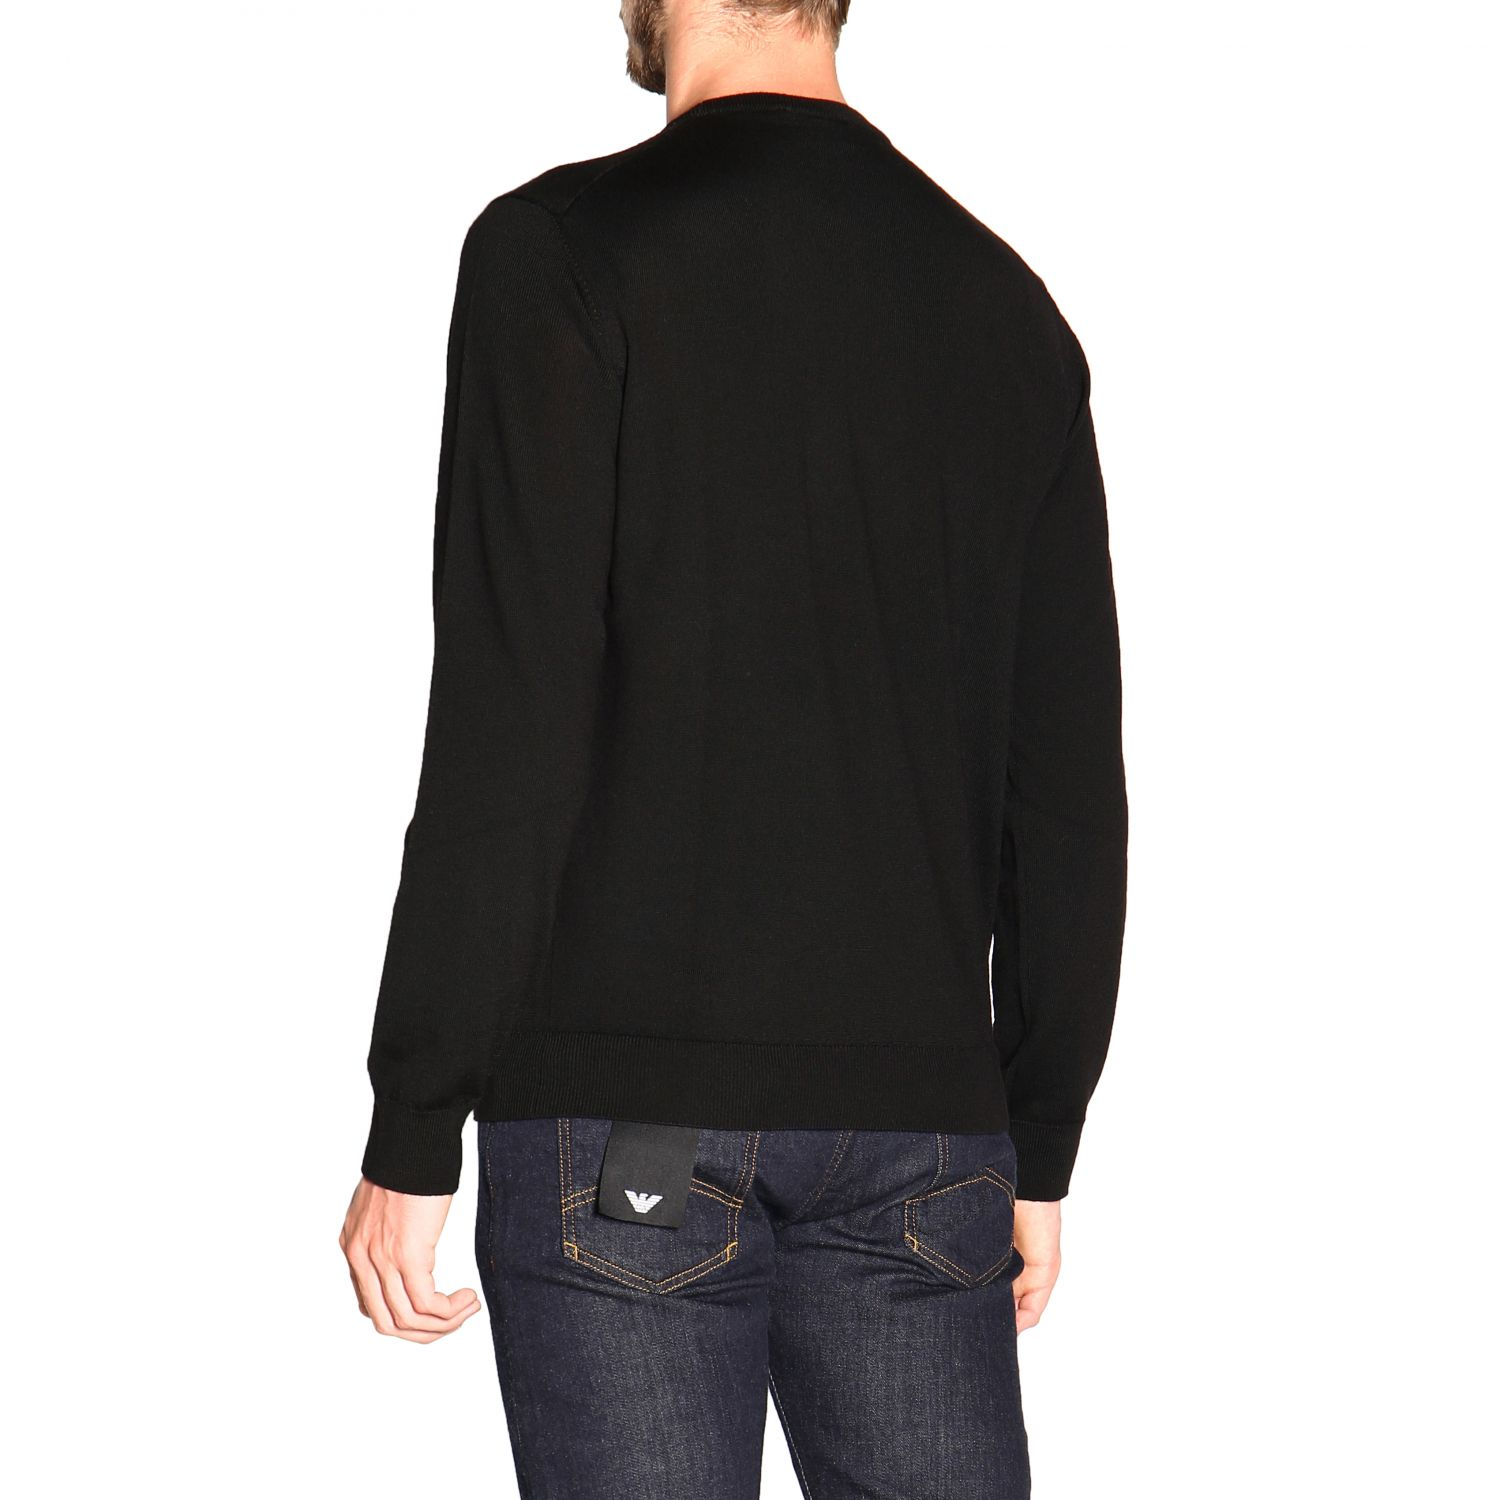 Emporio Armani long-sleeved crew neck sweater in wool black 3